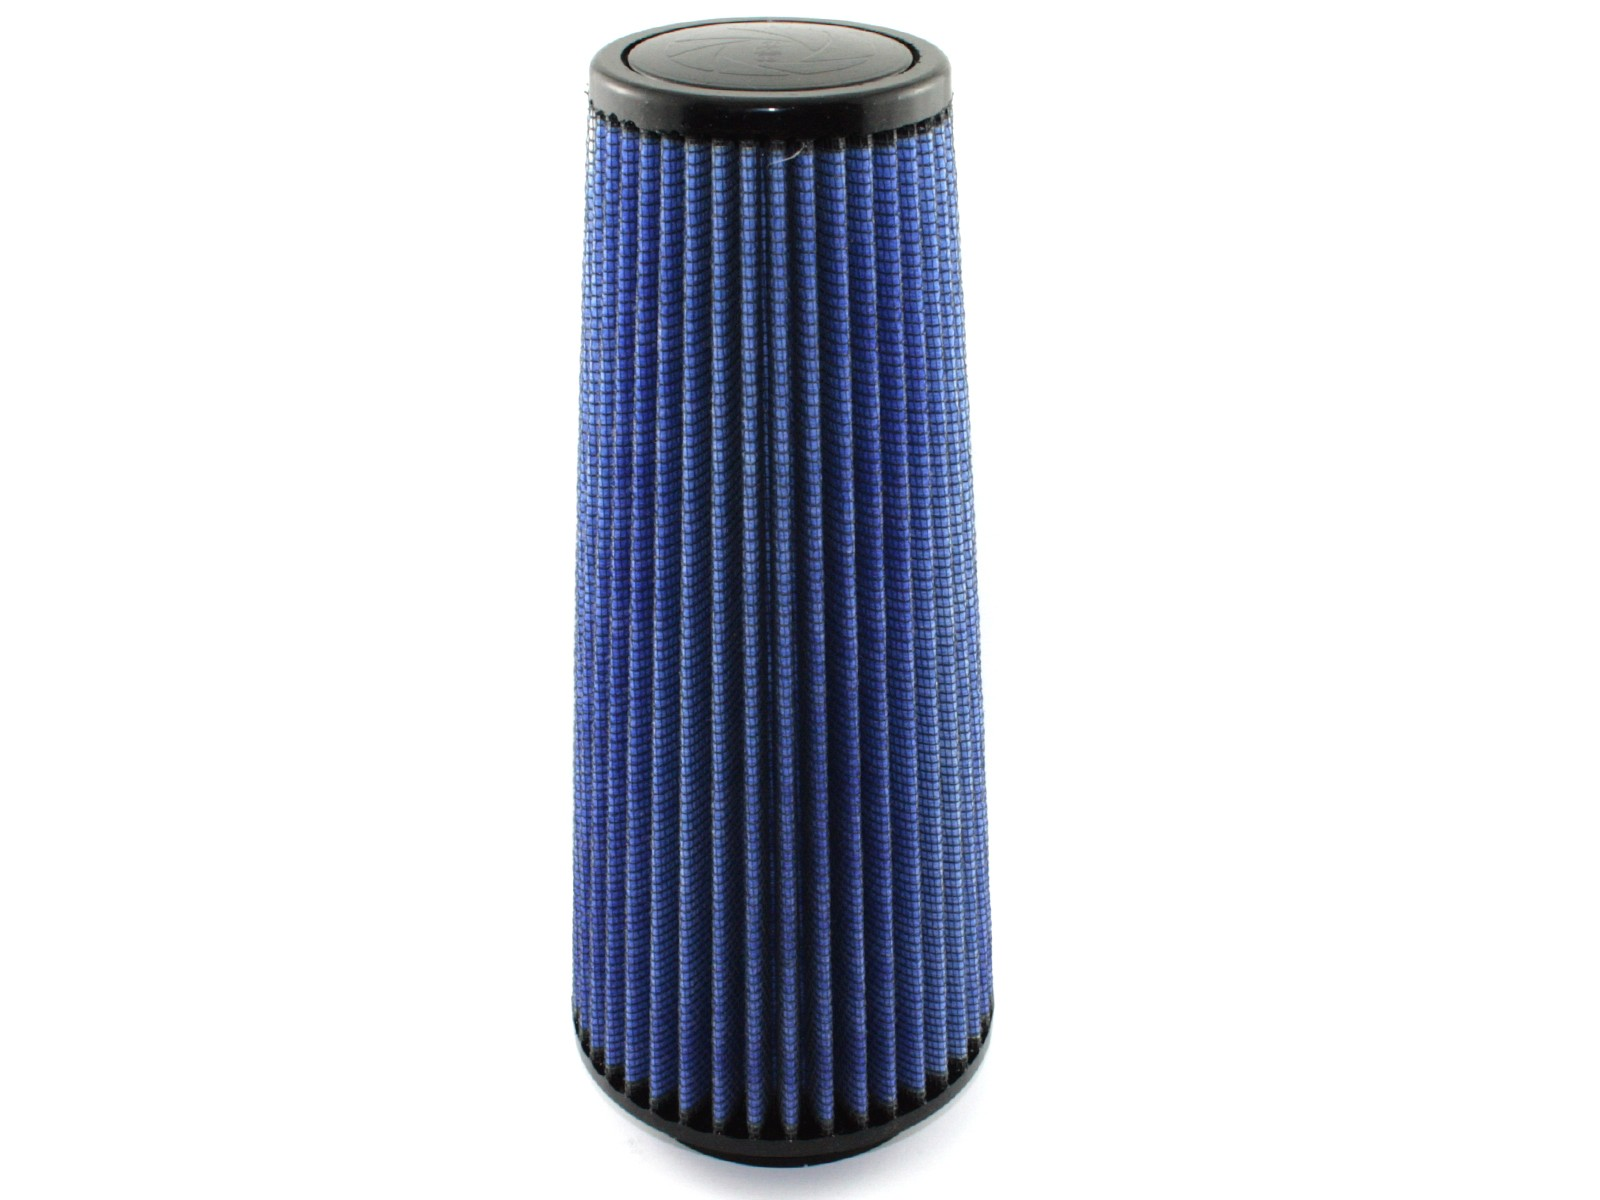 aFe POWER 24-35512 Magnum FLOW Pro 5R Air Filter